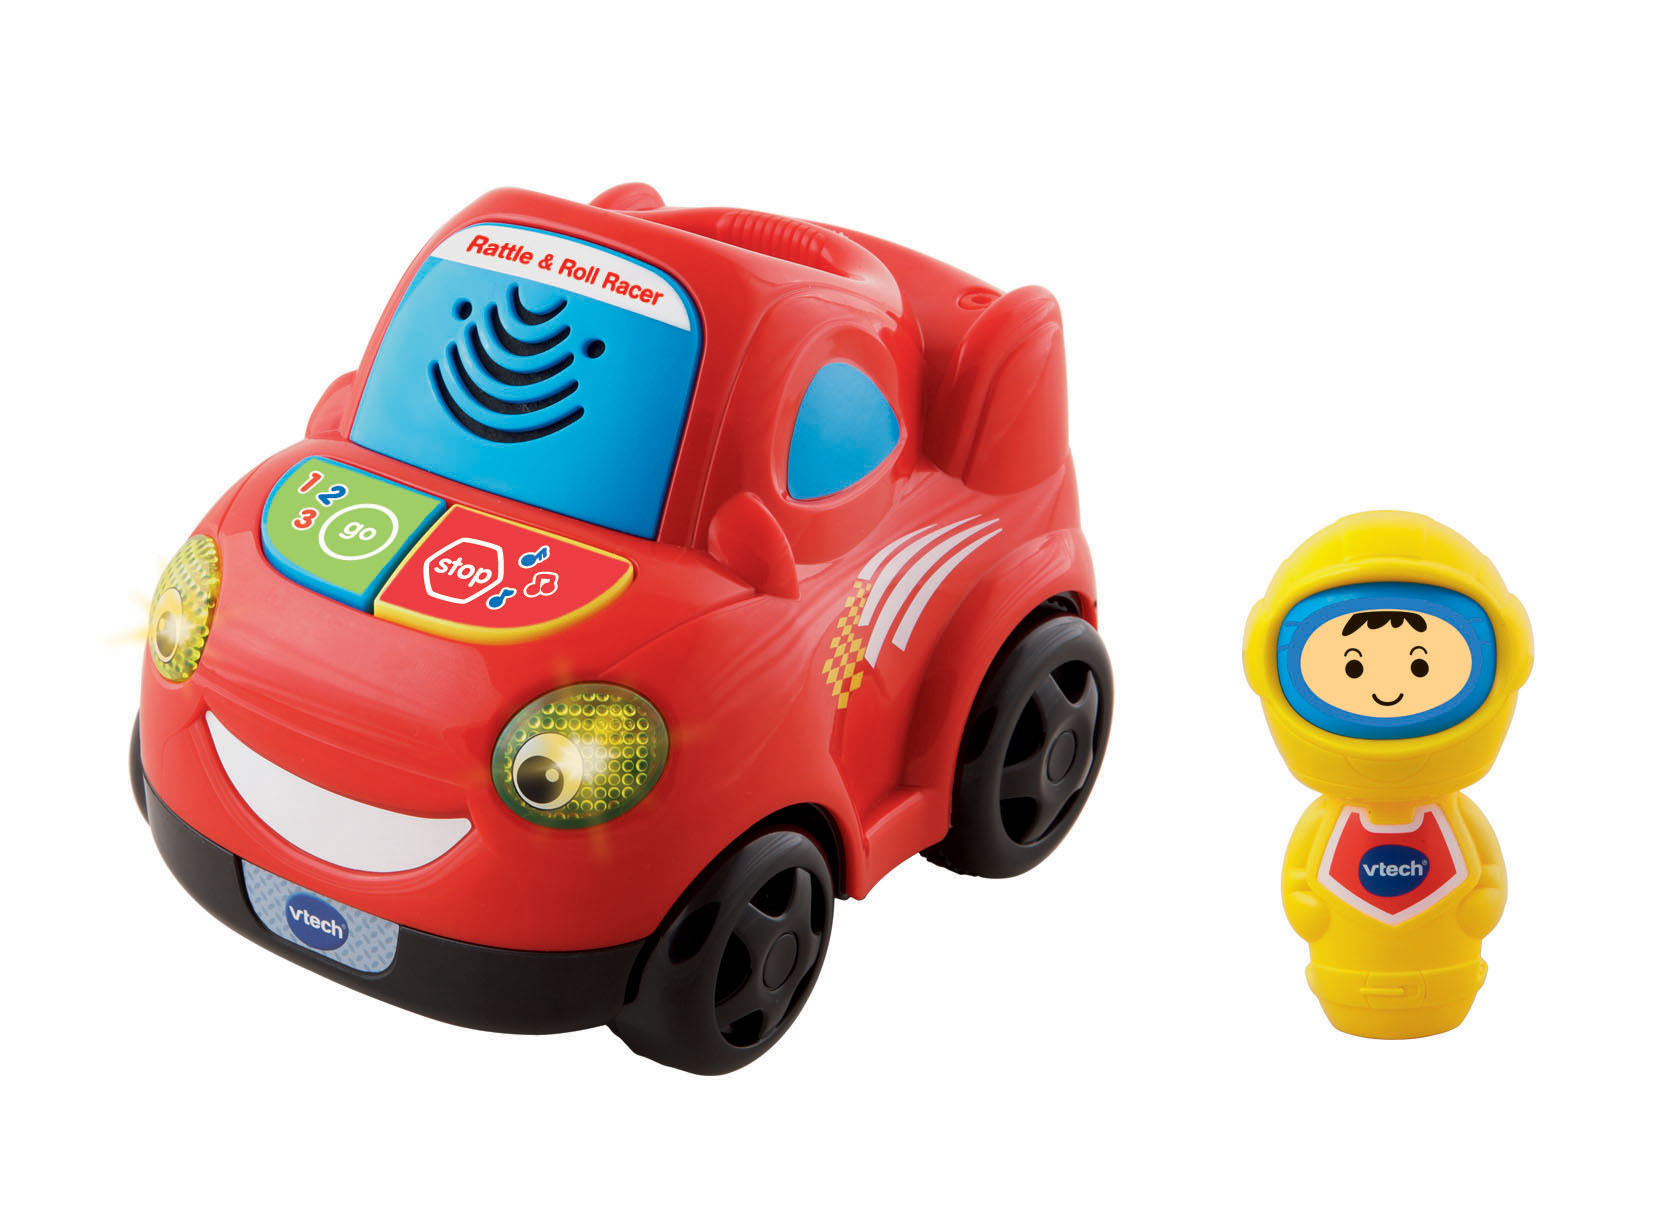 NEW VTECH BABY RATTLE AND ROLL RACER KIDS CHILDRENS FUN TOY CAR